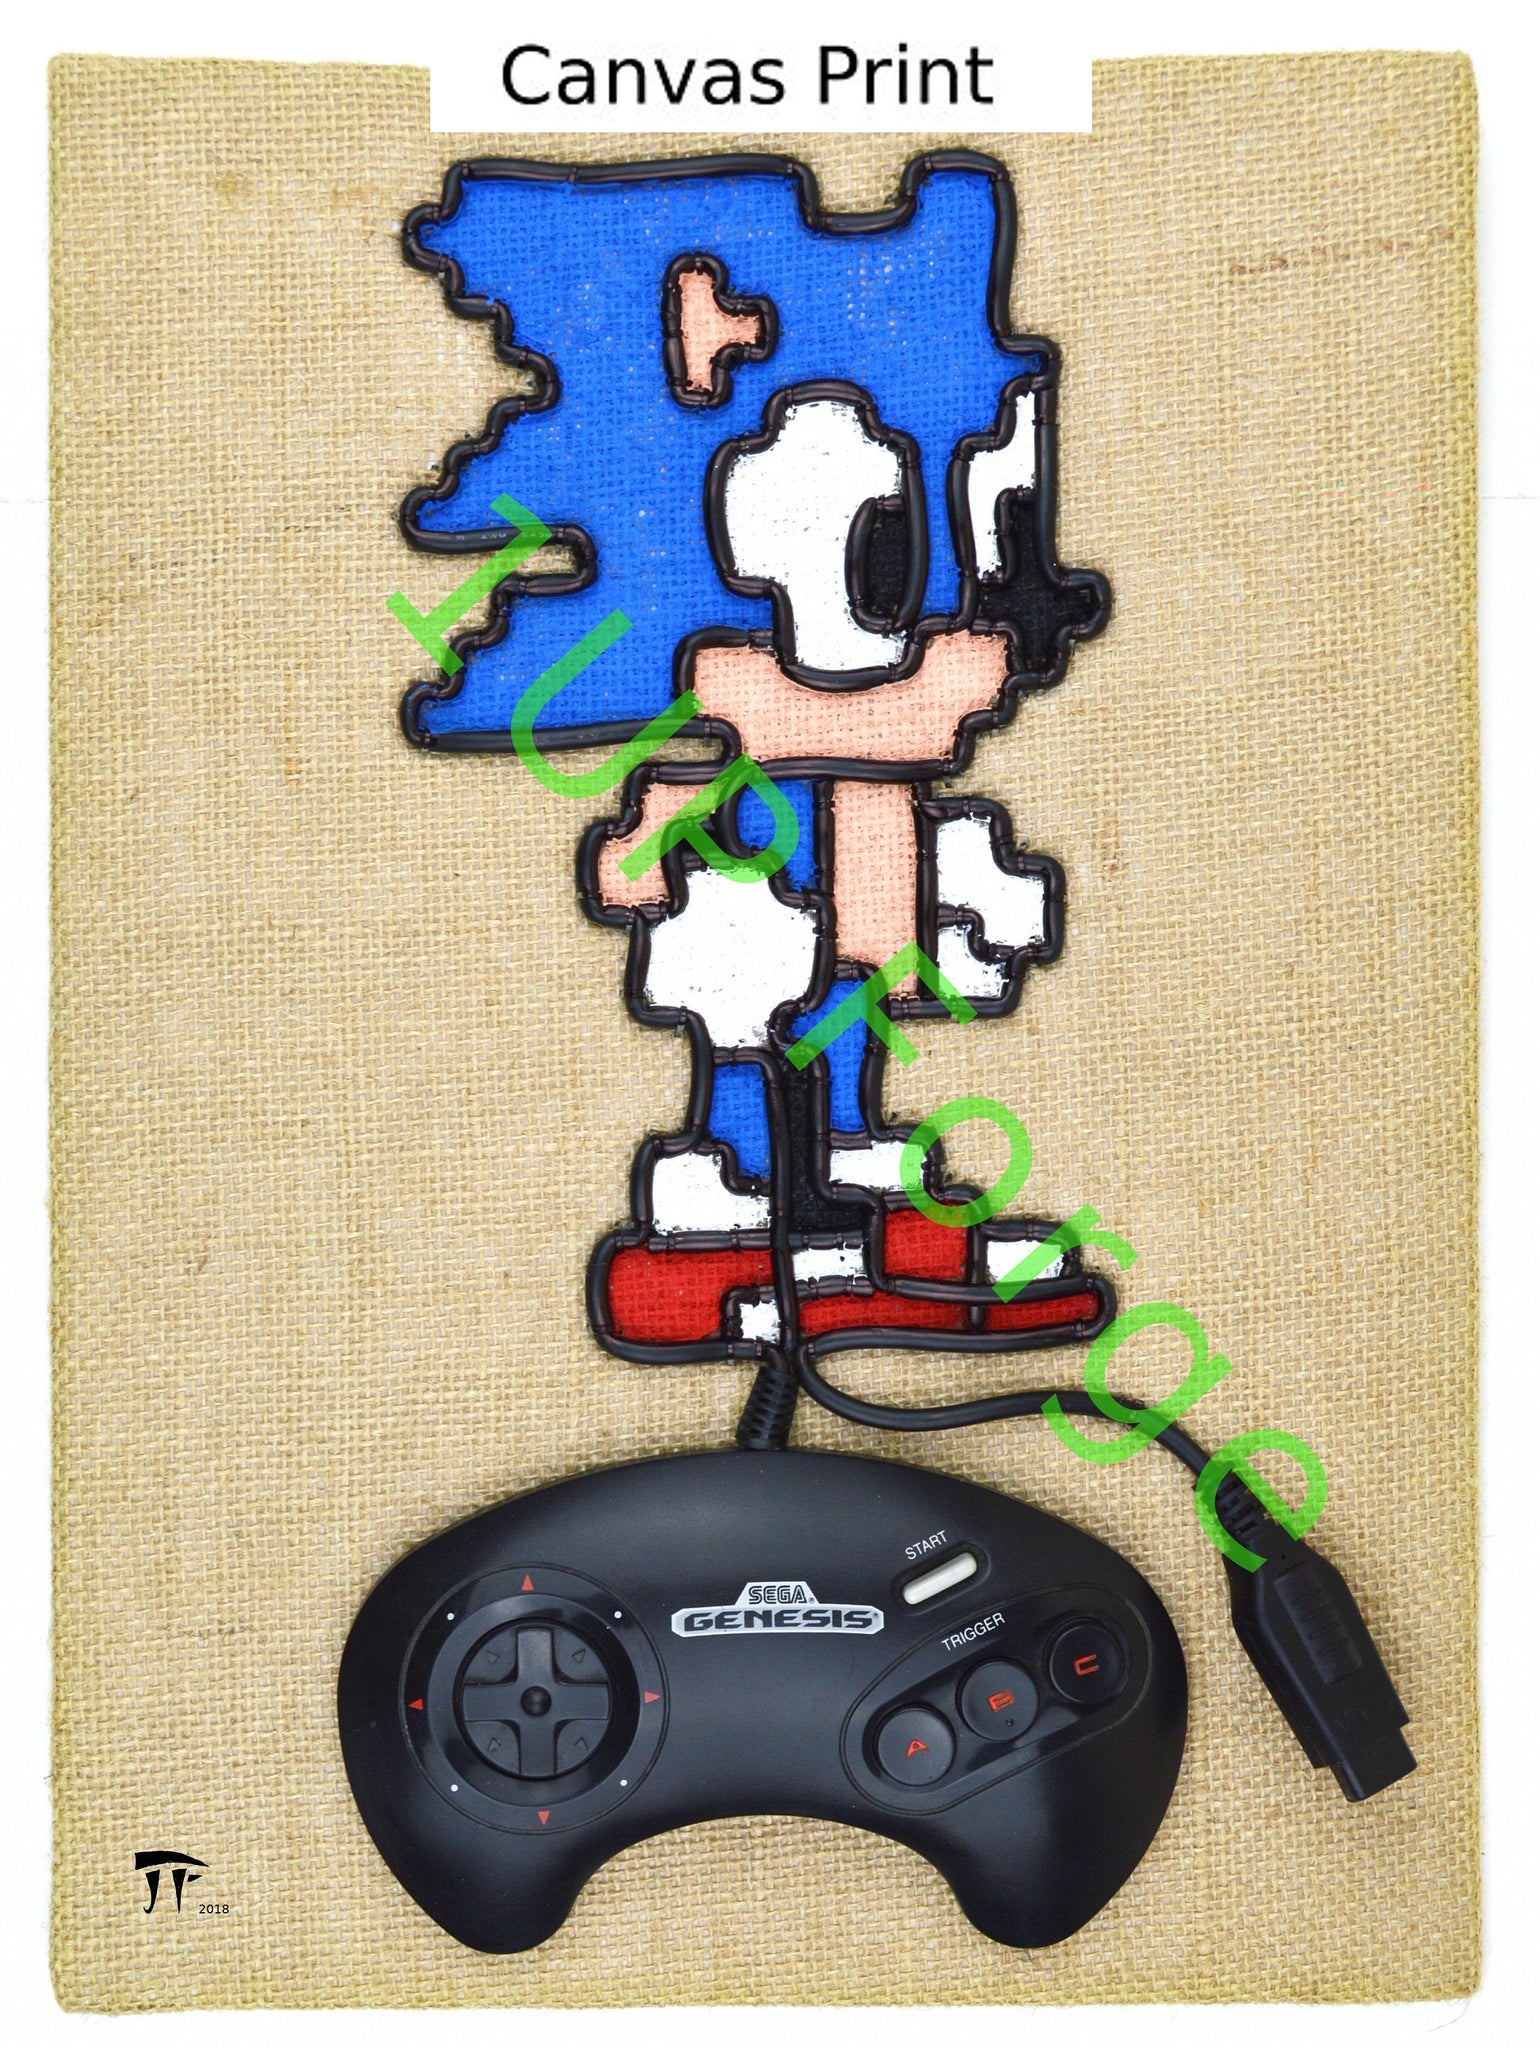 Sega Genesis Canvas Art - Sonic The Hedgehog  Print In Color - Video Game Art